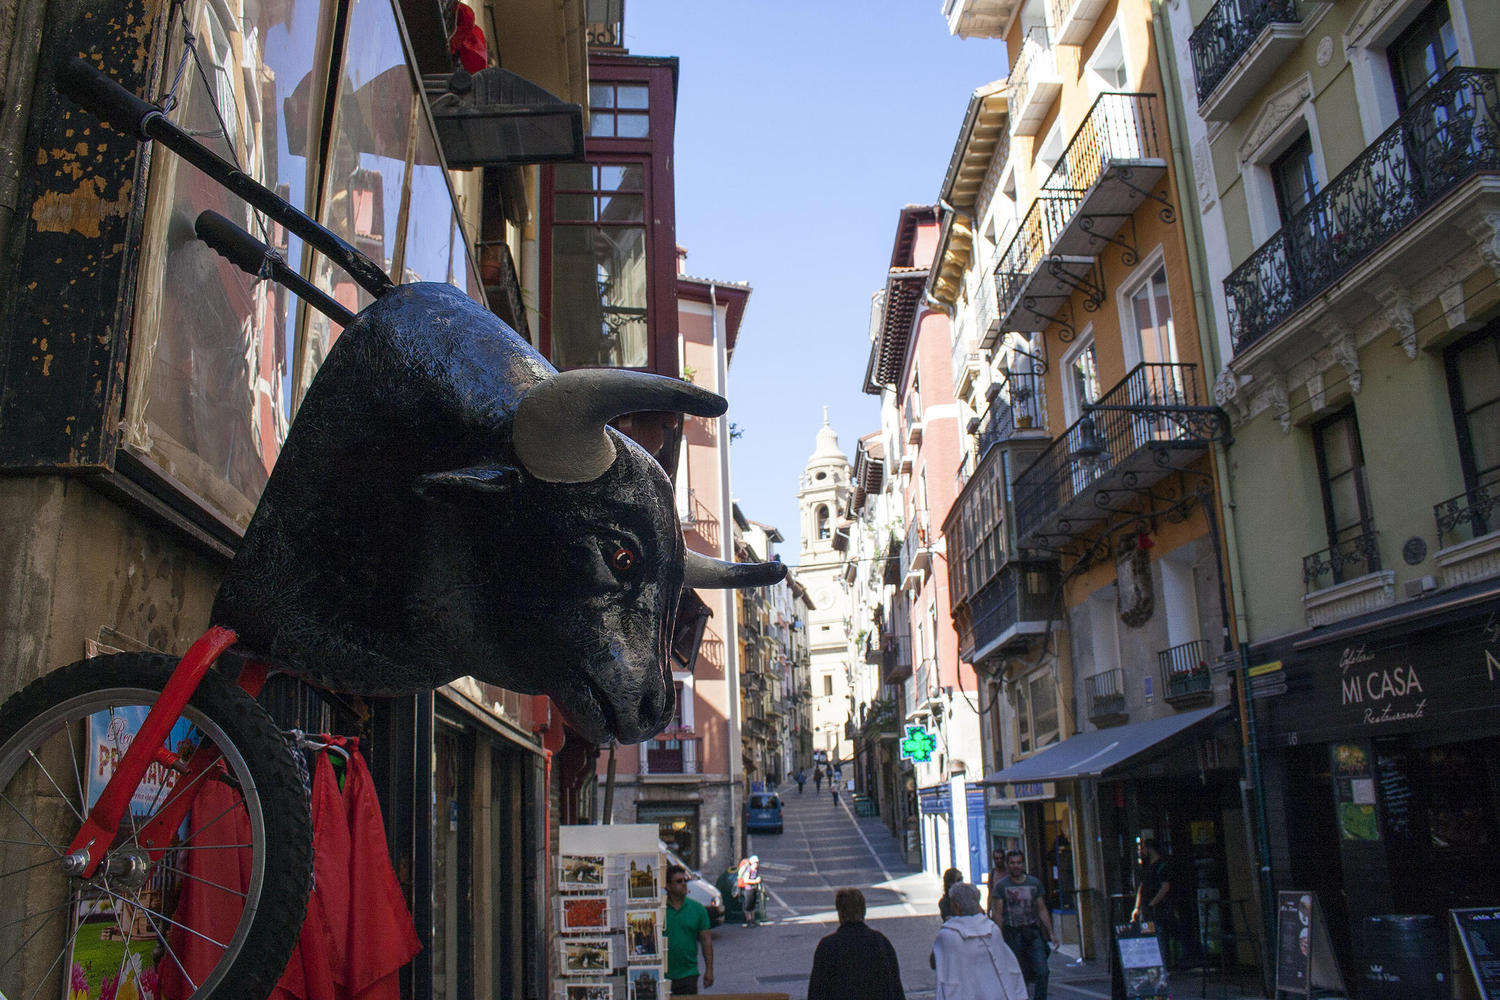 The running of the bulls is always present in Pamplona.